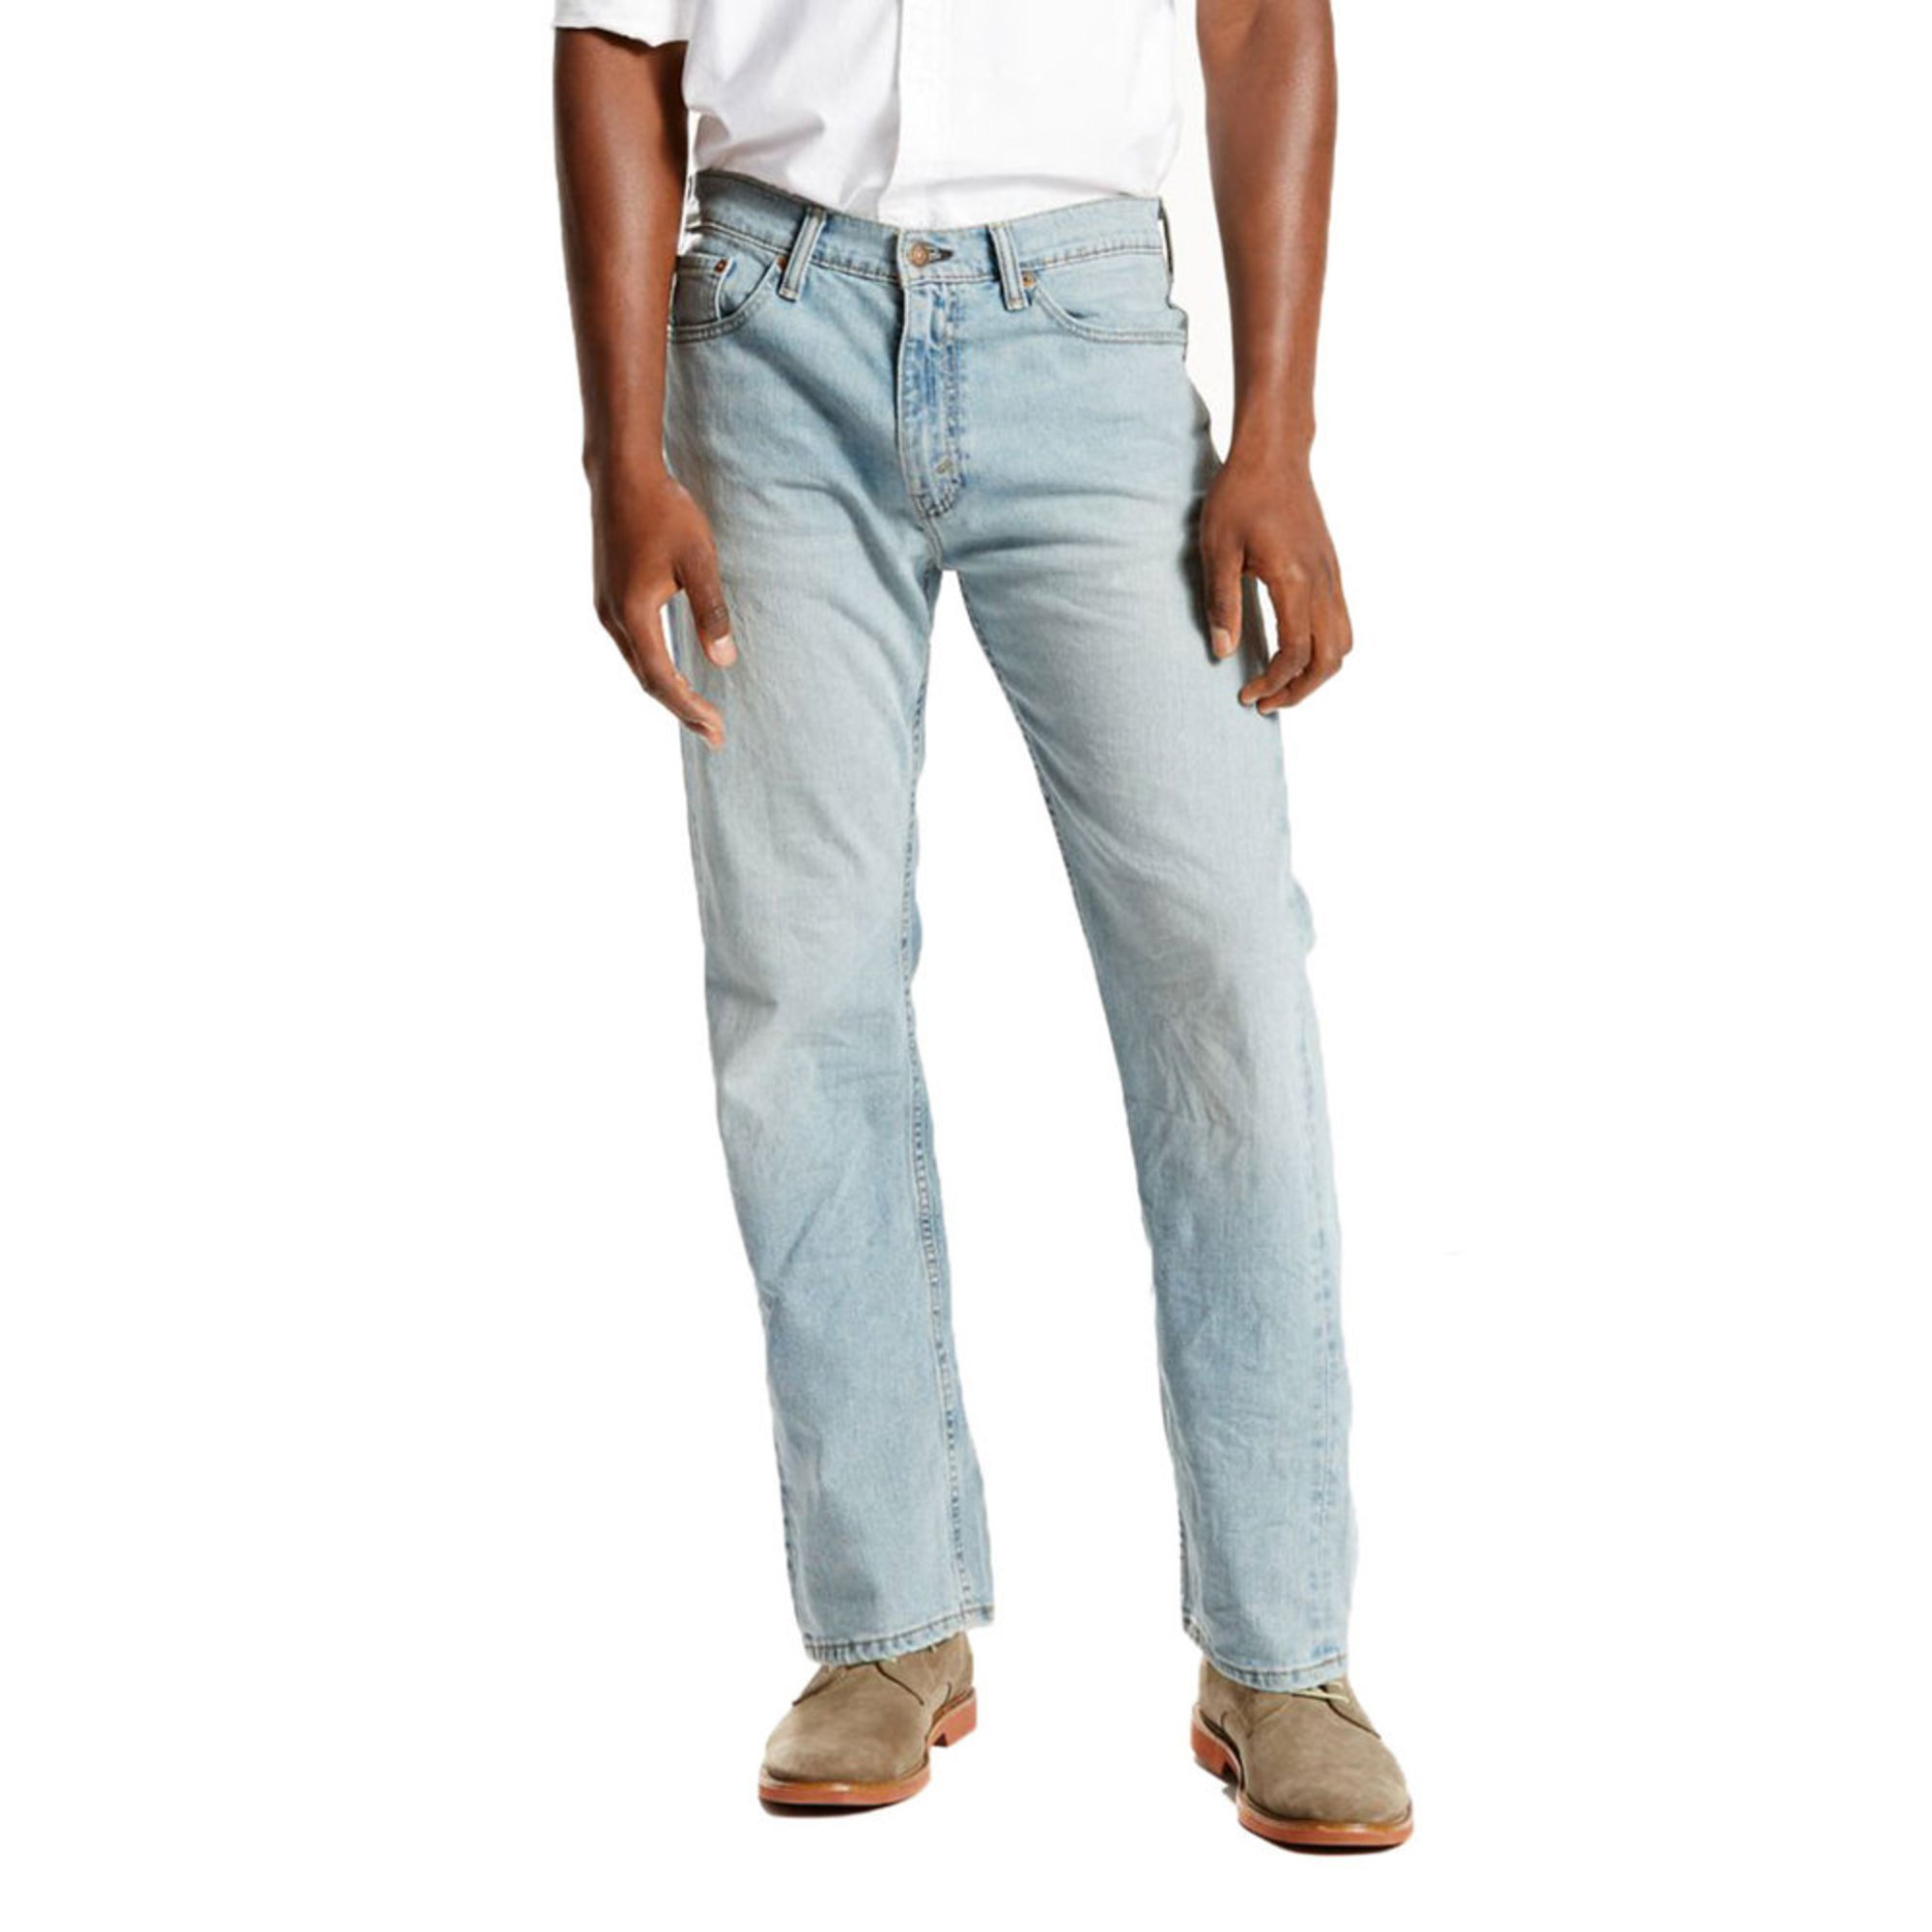 5d79b77dd8b Levi's Men's 505 Straight Leg Stretch Jeans | Collection Jeans ...